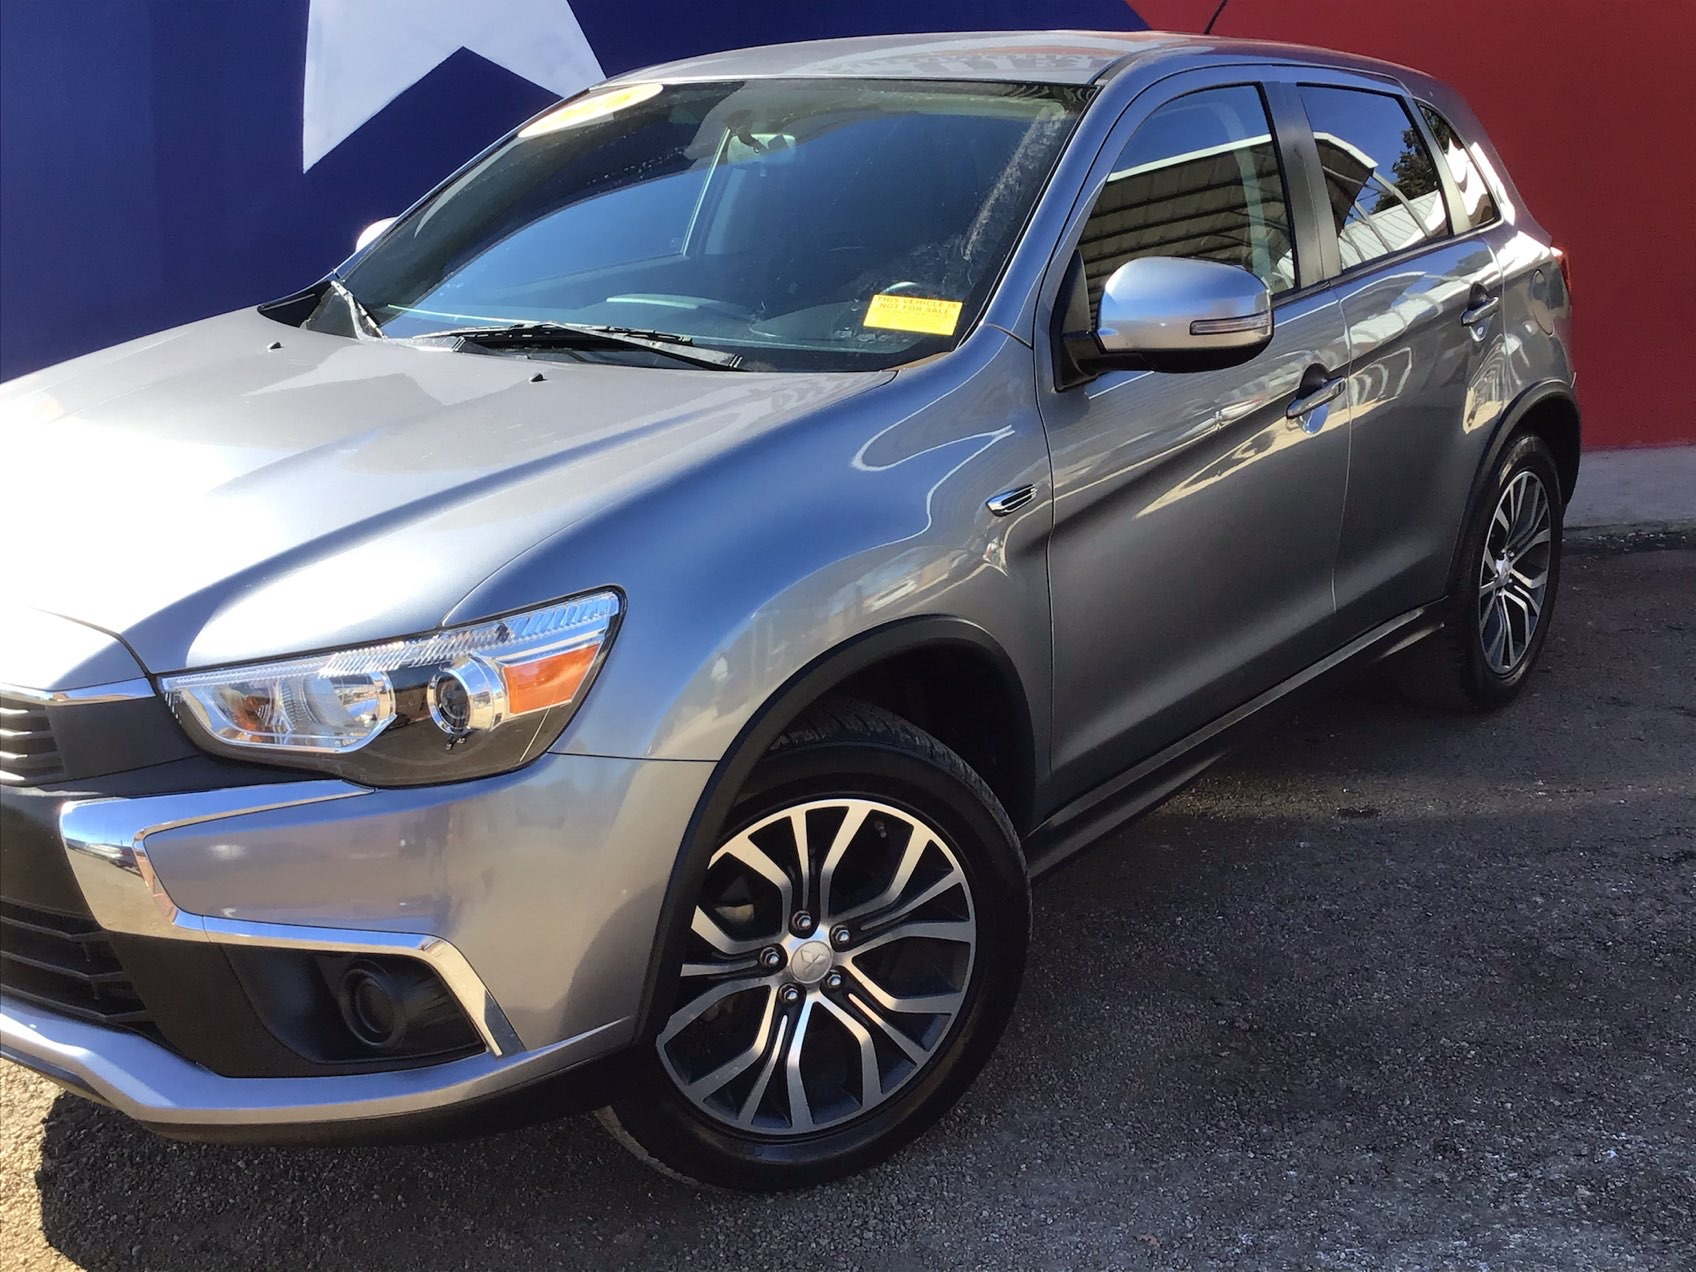 used vehicle - SUV MITSUBISHI OUTLANDER SPORT 2016